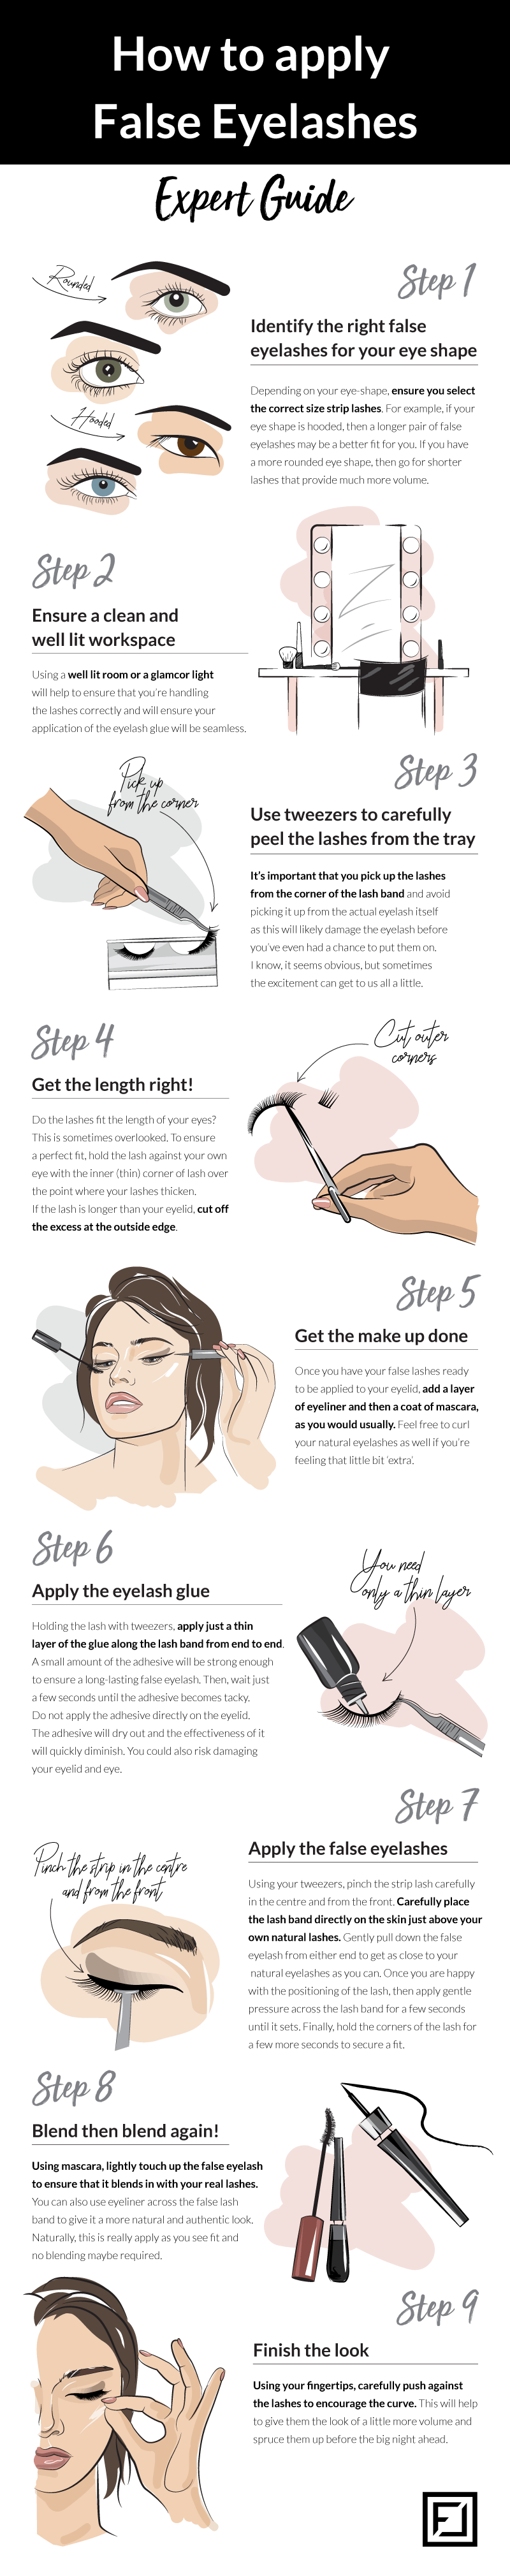 How to Apply False Eyelashes Infographic